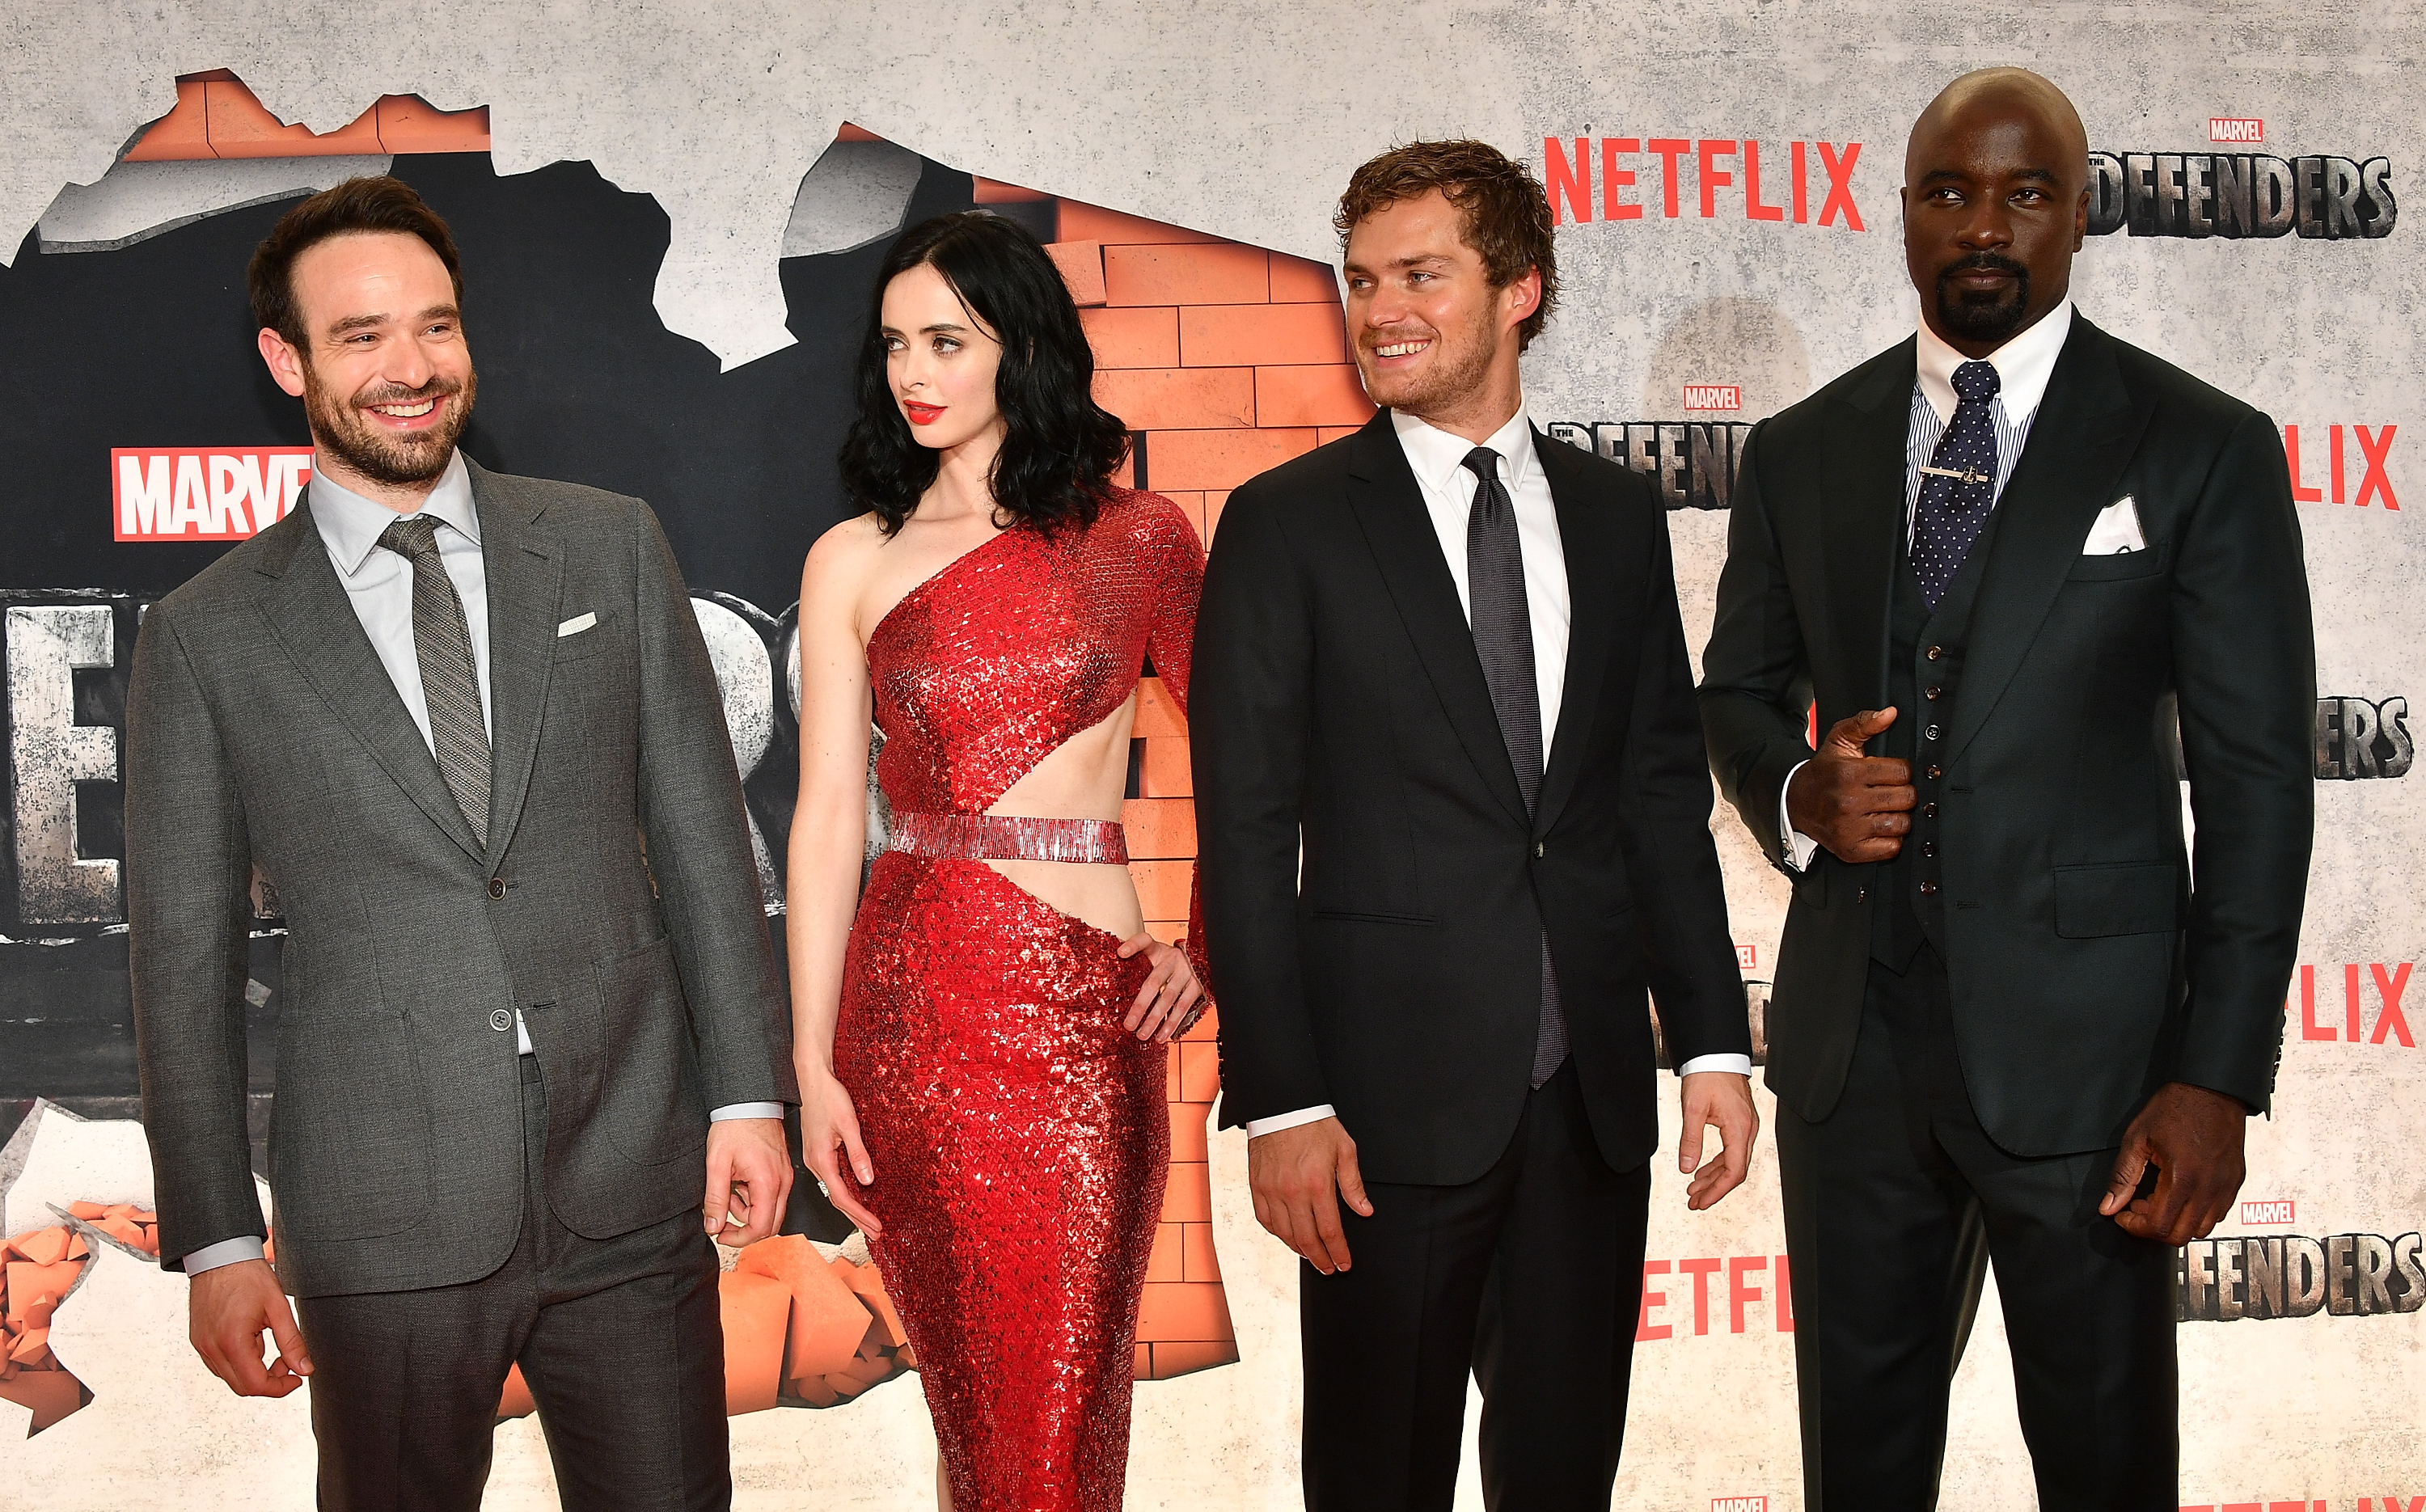 6 things we want to see in Marvel's The Defenders